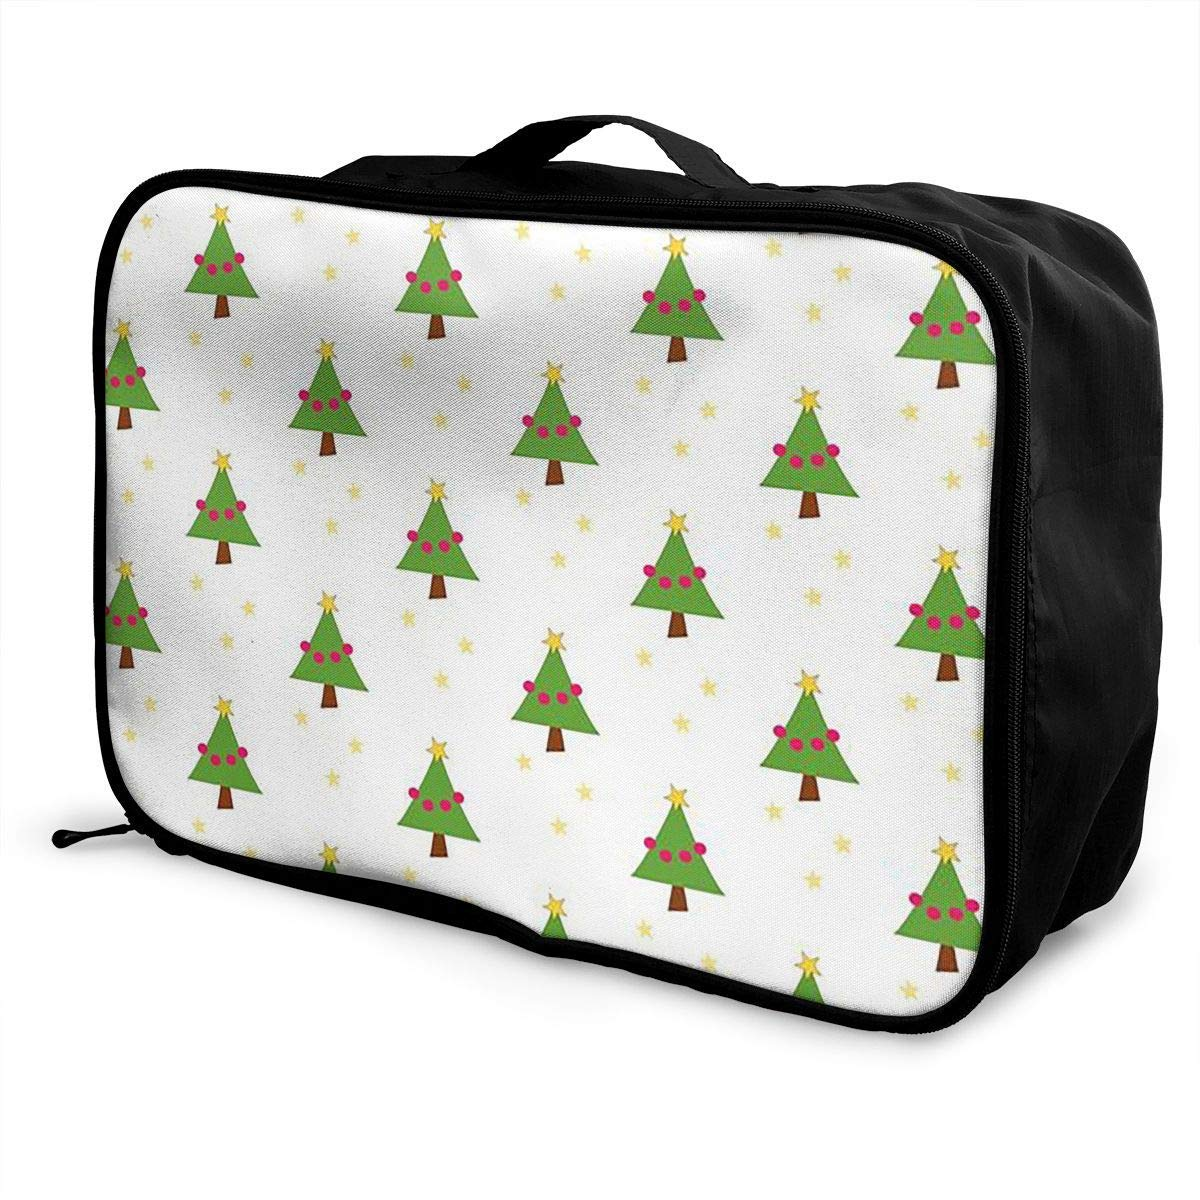 Portable Luggage Duffel Bag Merry Christmas Travel Bags Carry-on In Trolley Handle